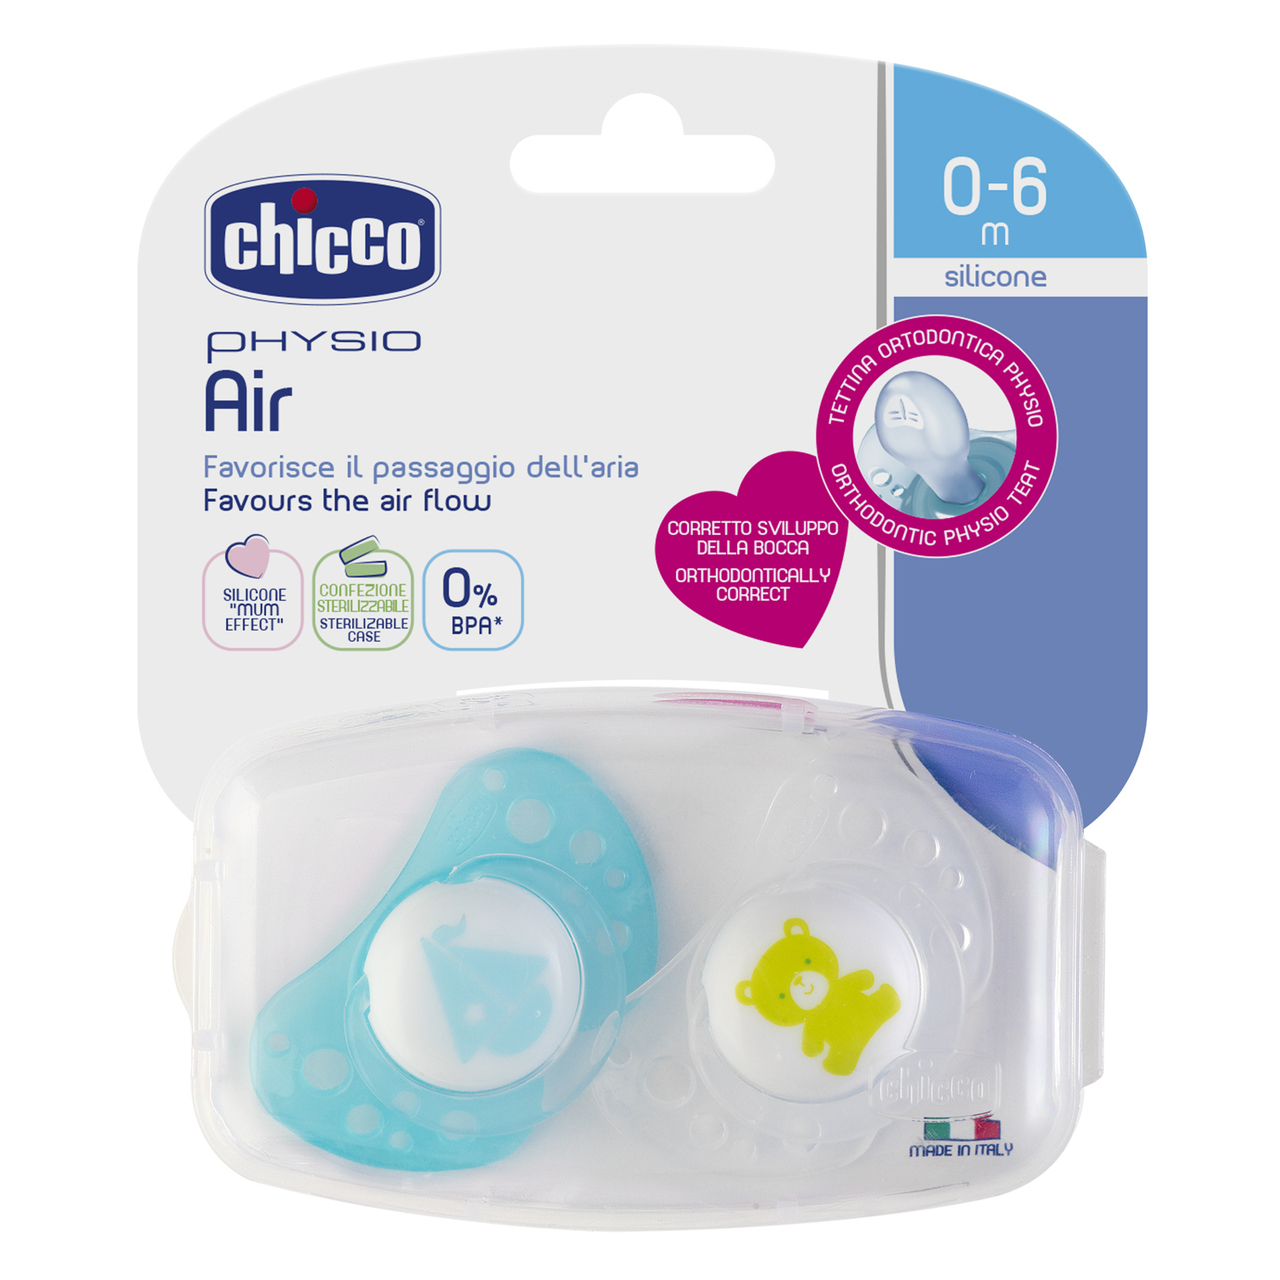 Chicco: Physio Air Soother - 0-6m 2 Pack (Boy) image